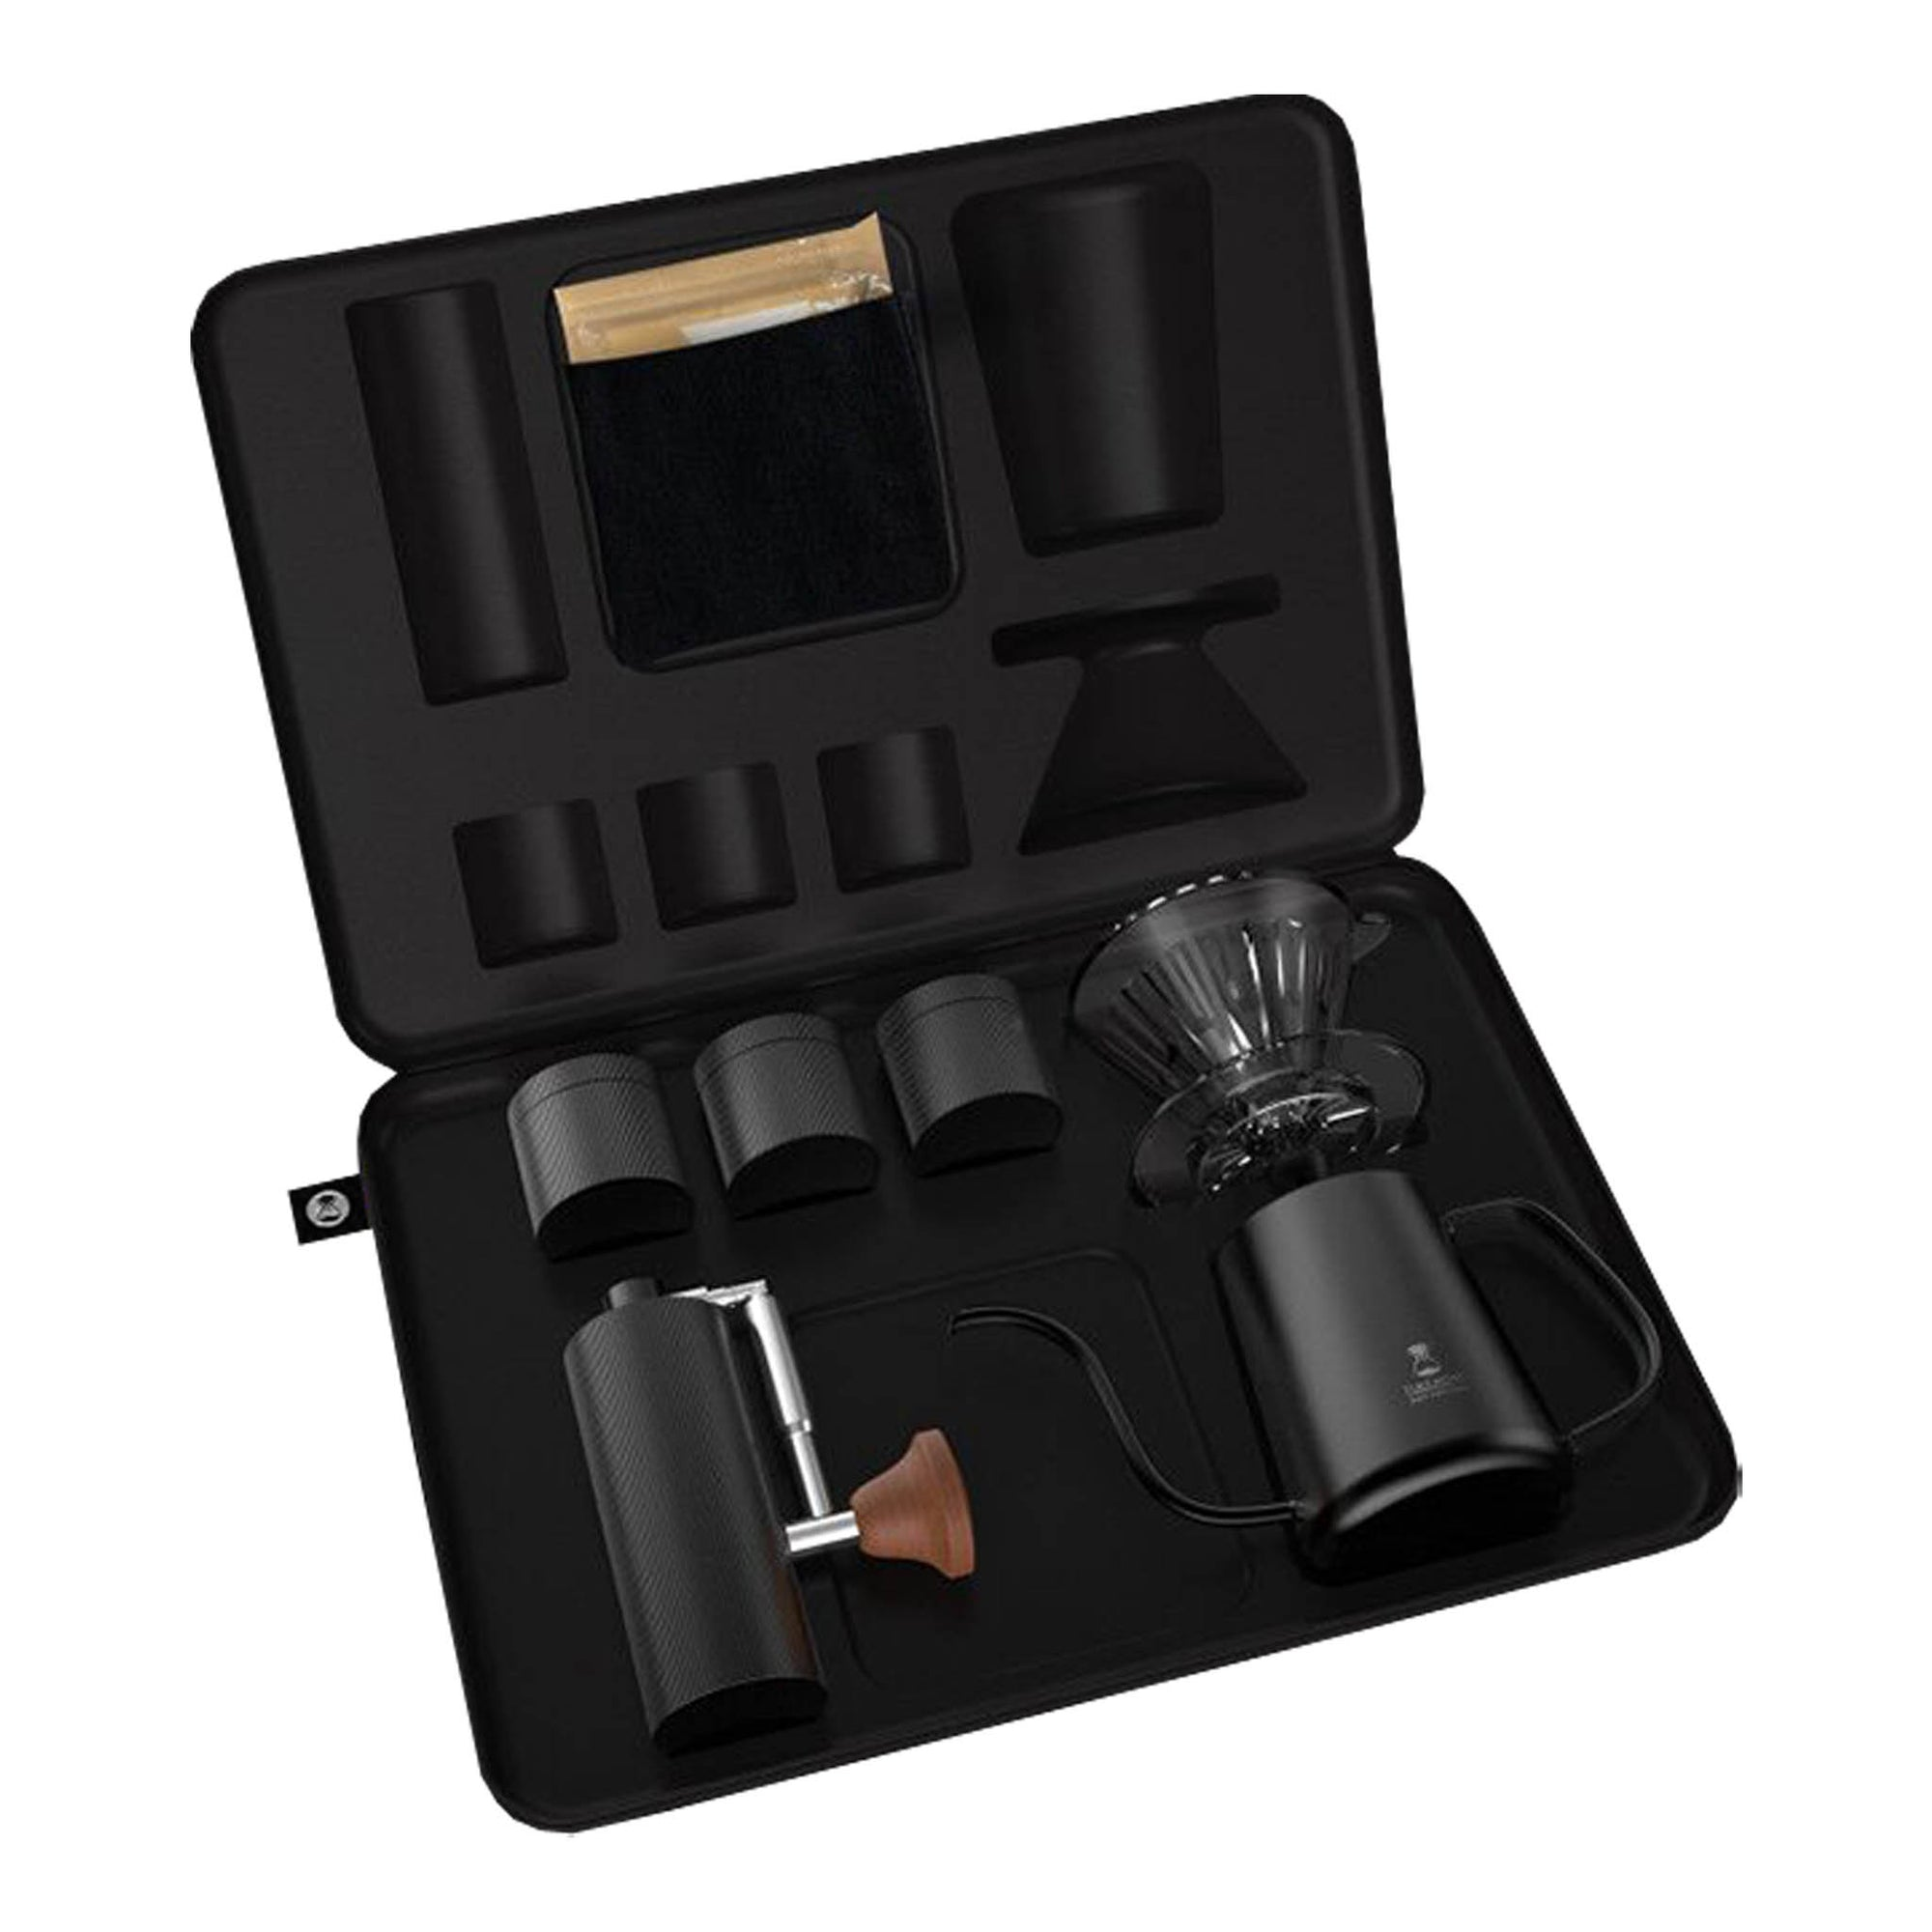 Timemore Nano Brewing Kit - Espresso Gear